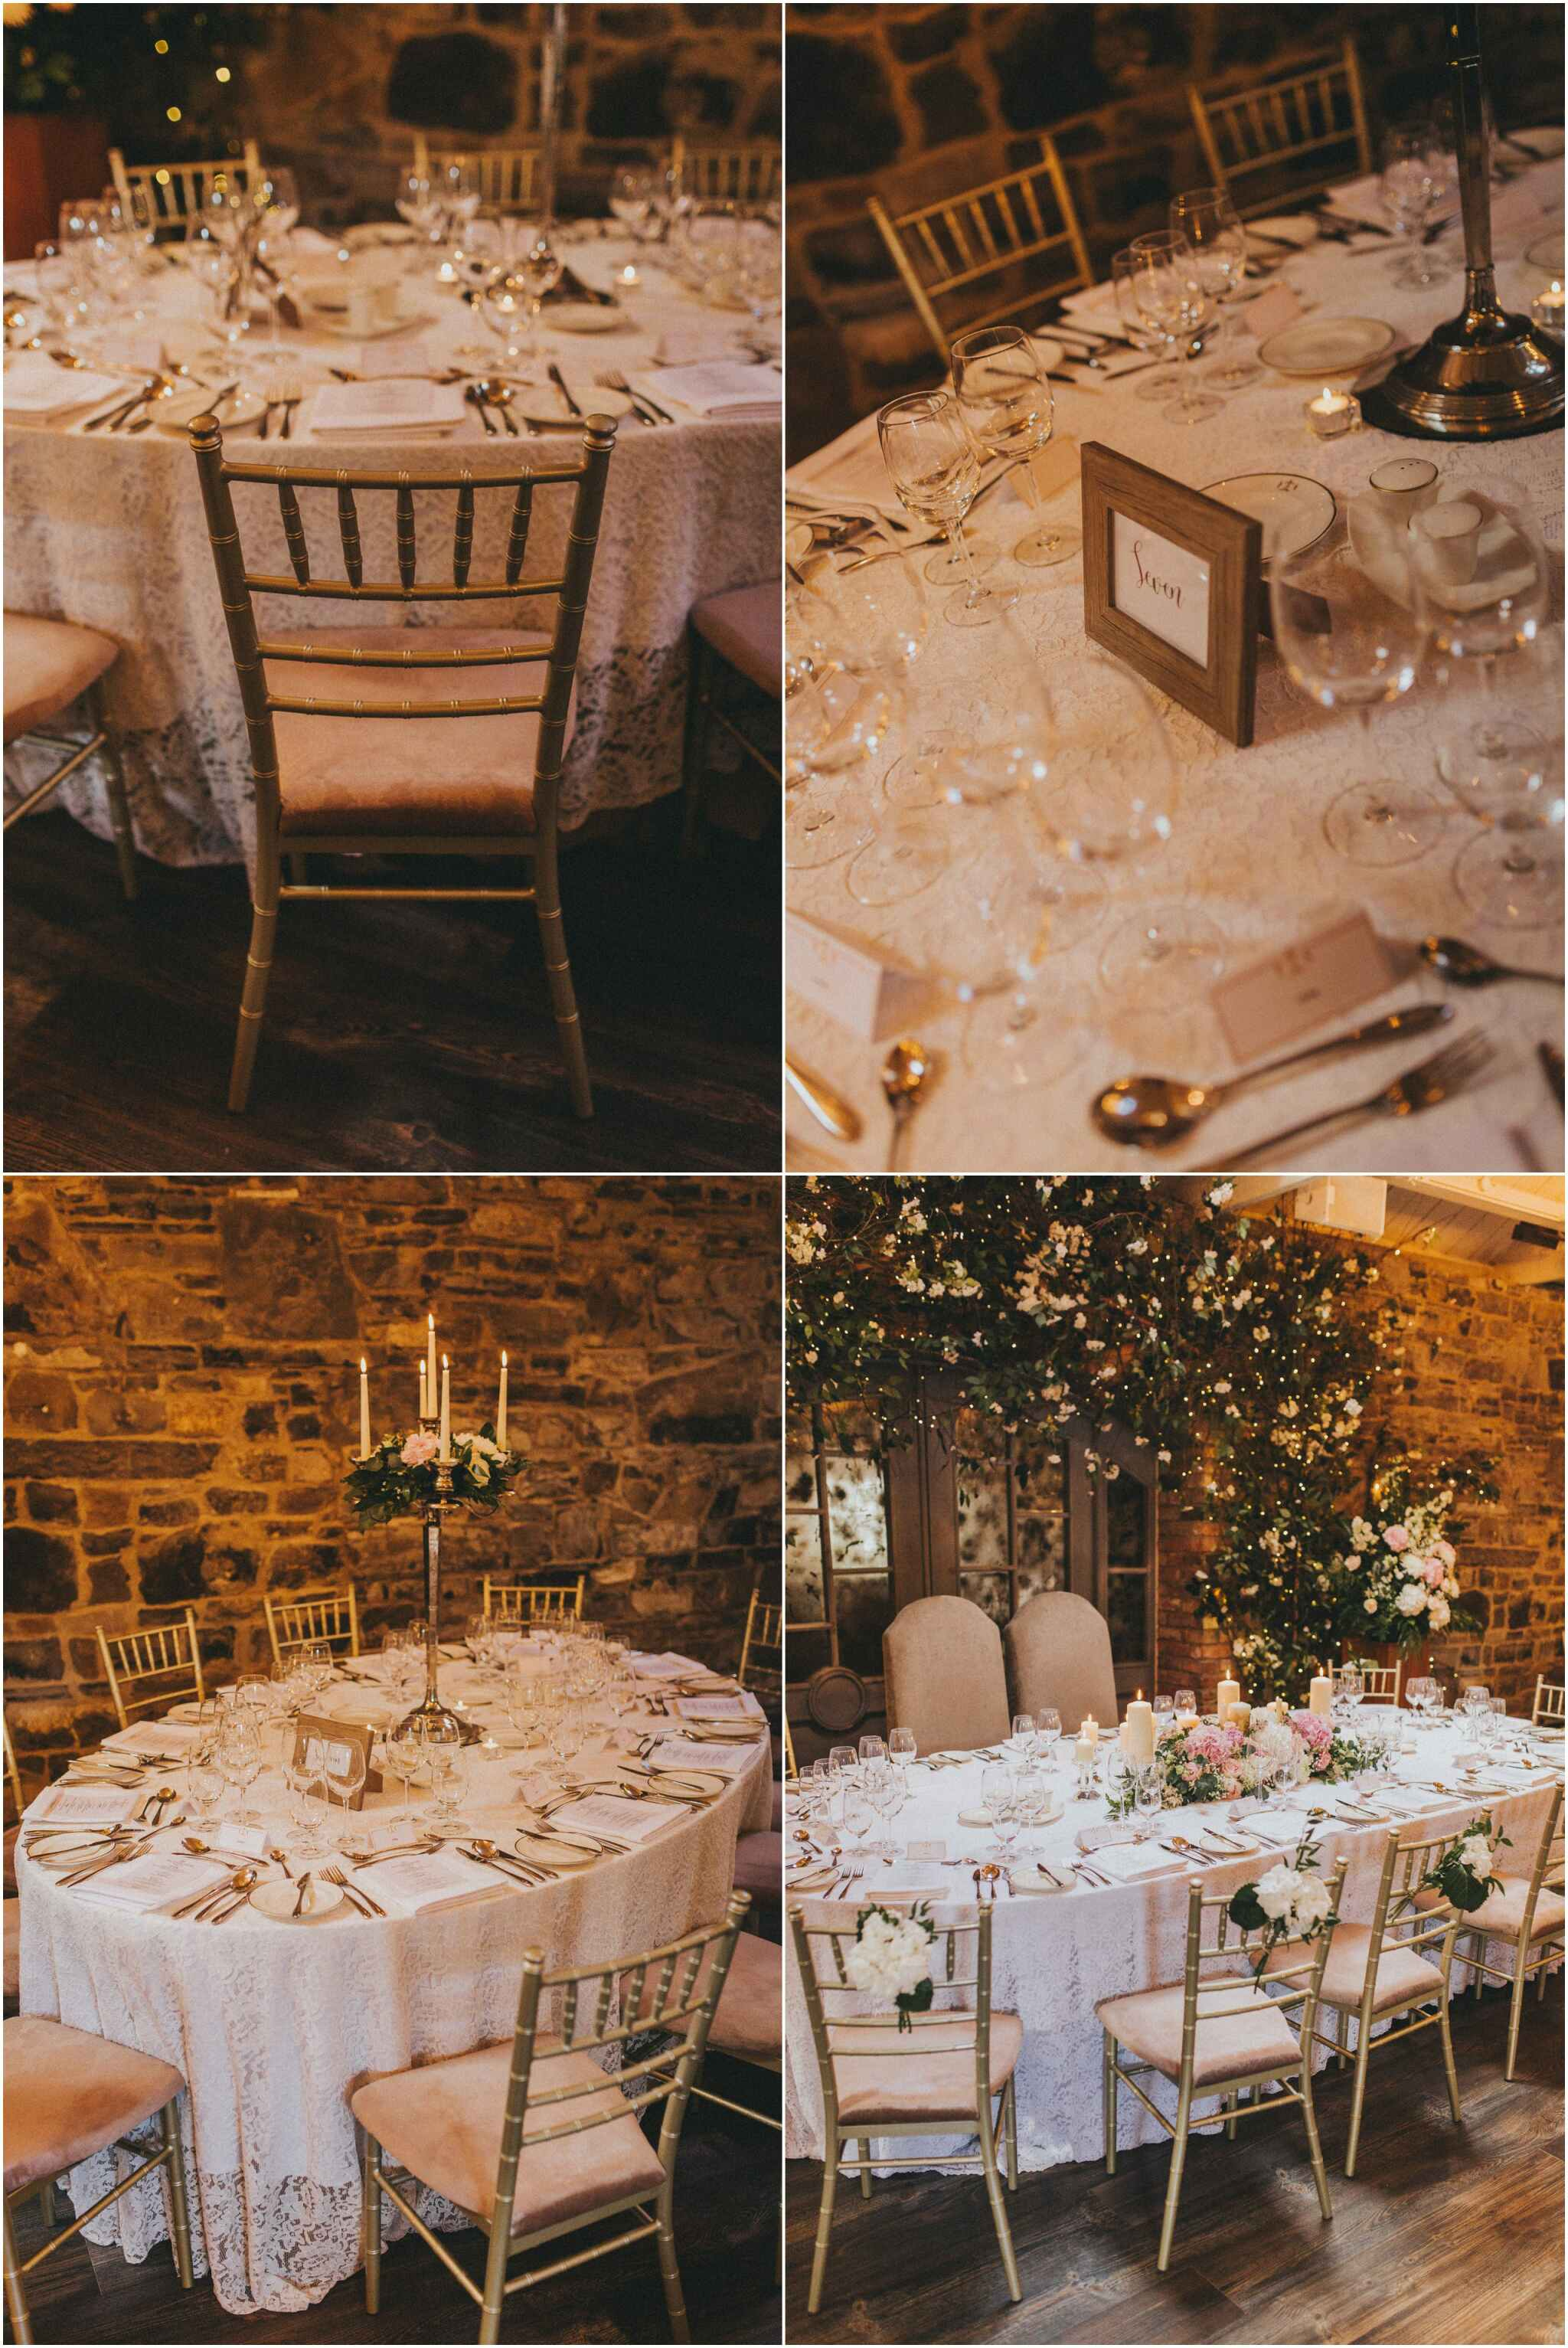 ballymagarvey village wedding 00119 - Fun and Relaxed wedding and elopement photography in Ireland, perfect for adventurous and outdoorsy couples